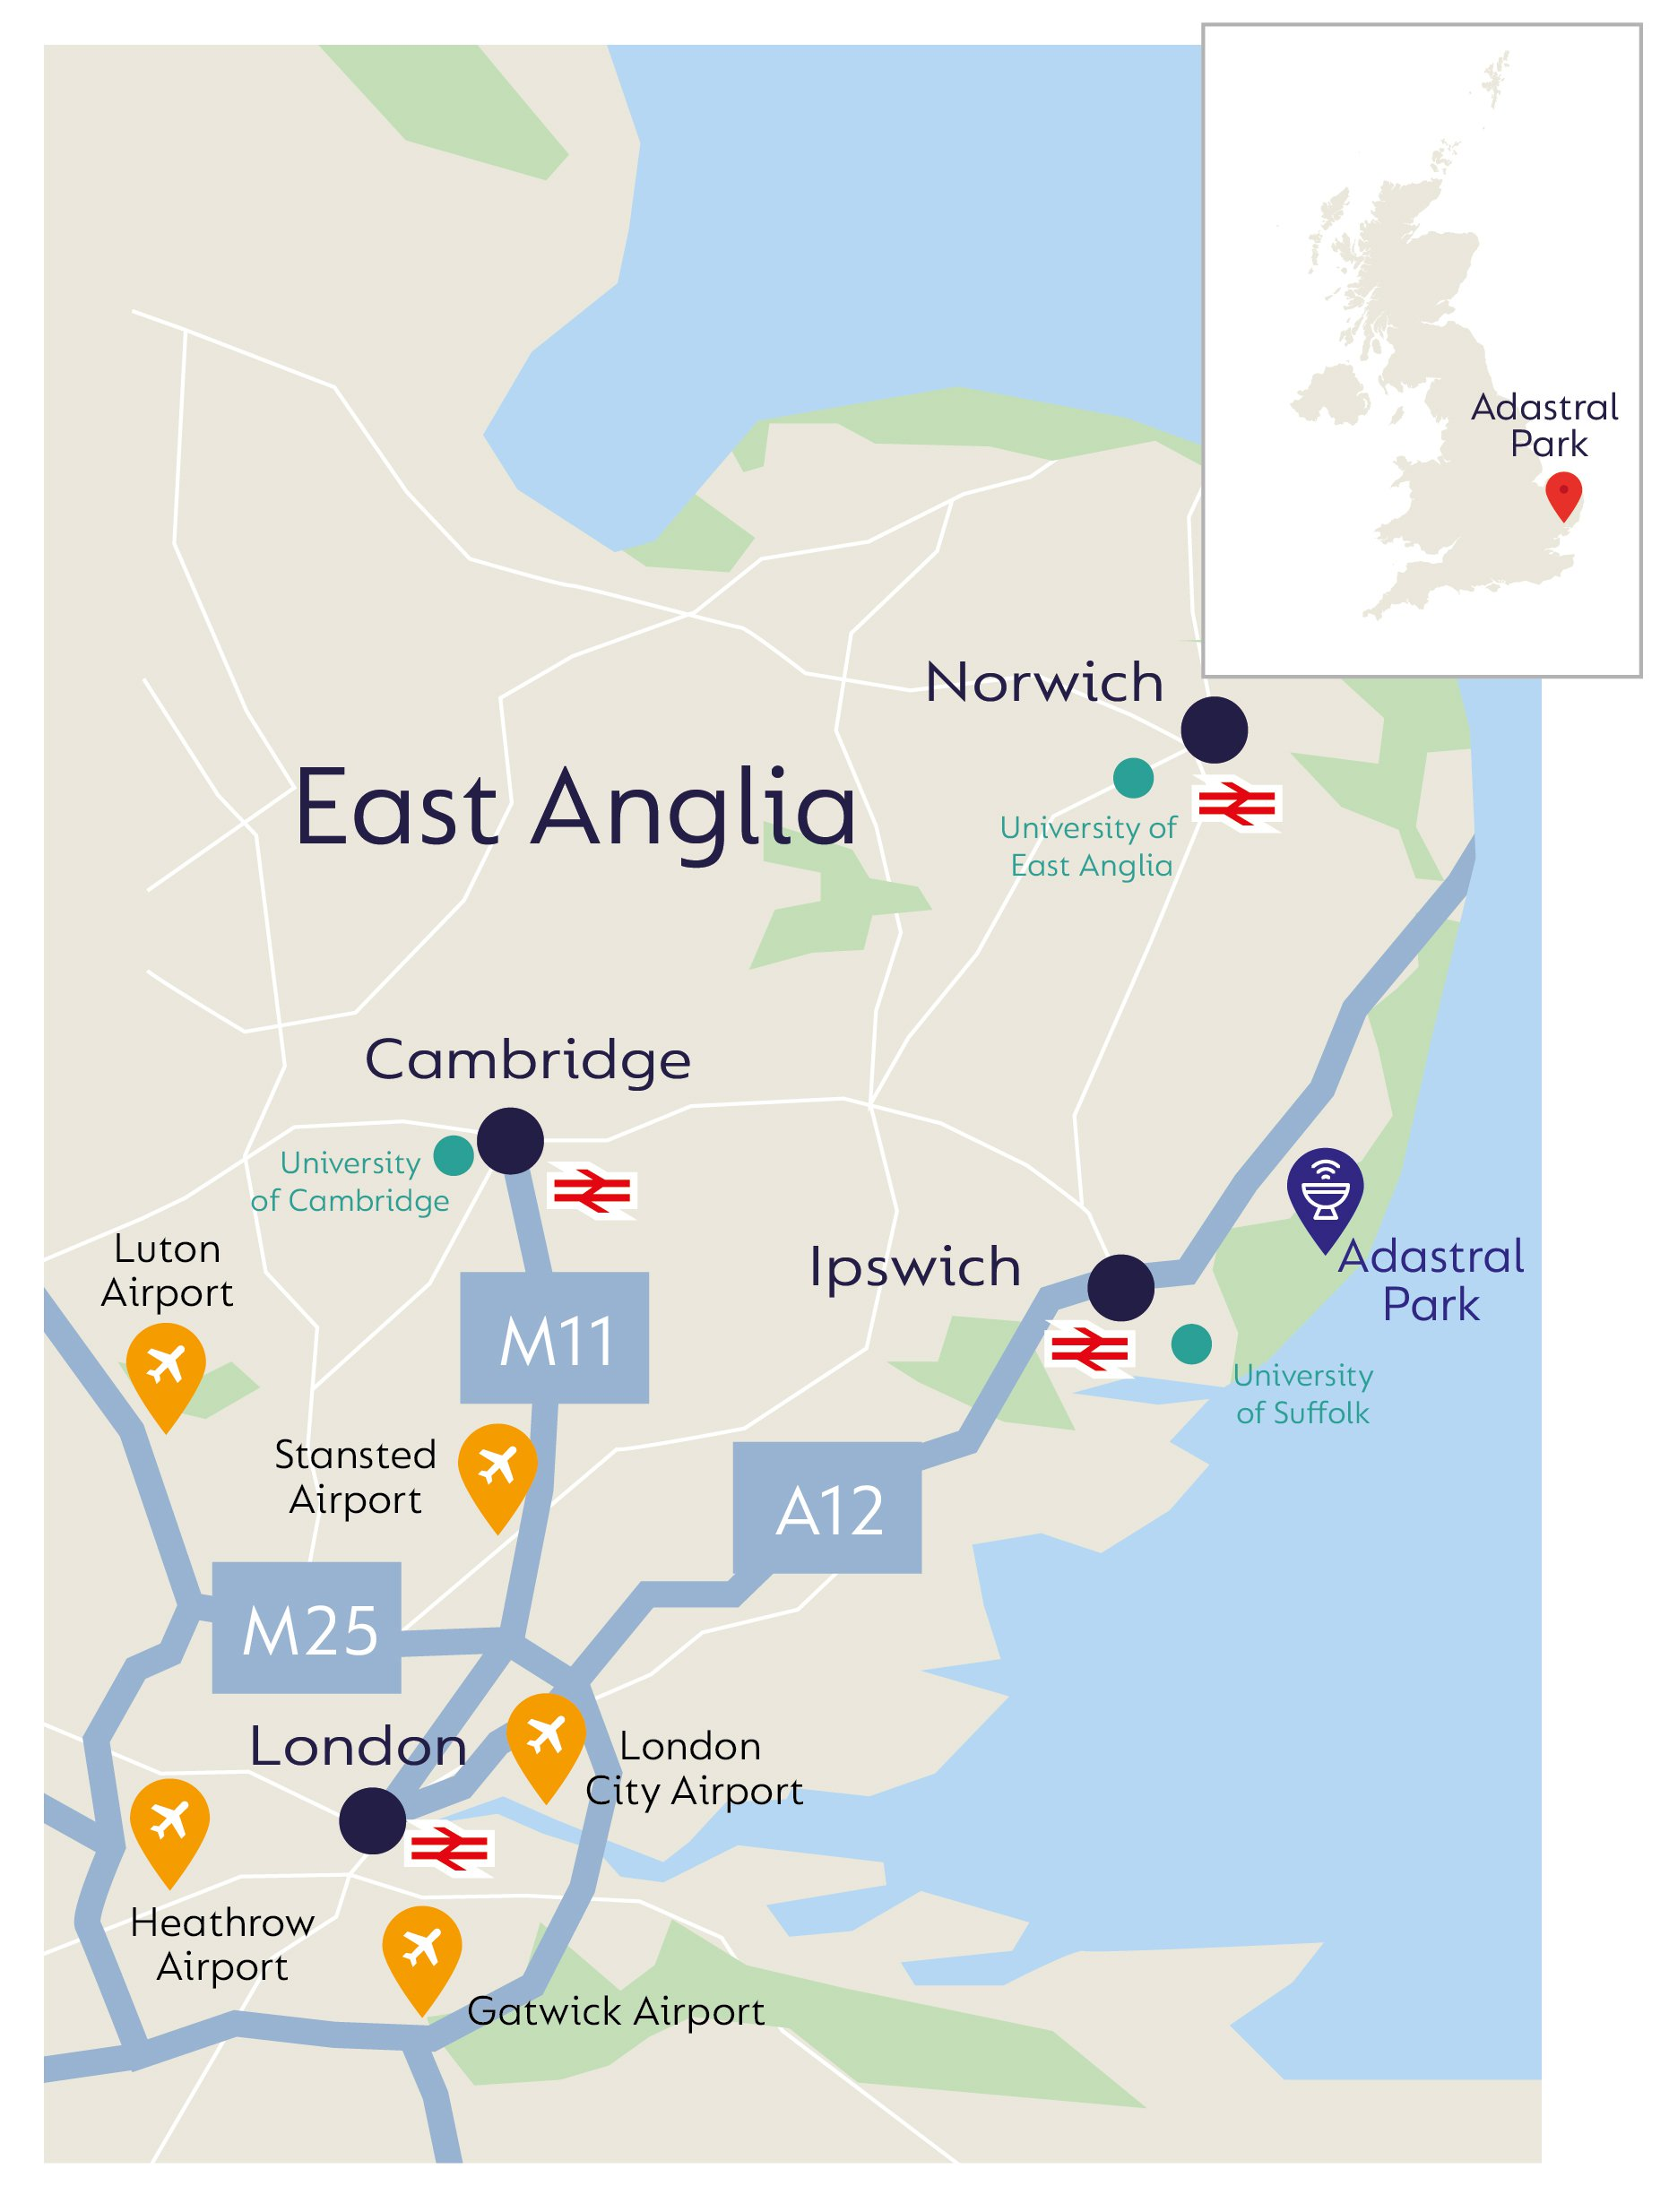 Image of UK map showing the infrastructure and facilities in the East Anglia region supporting 5g and digitalisation.